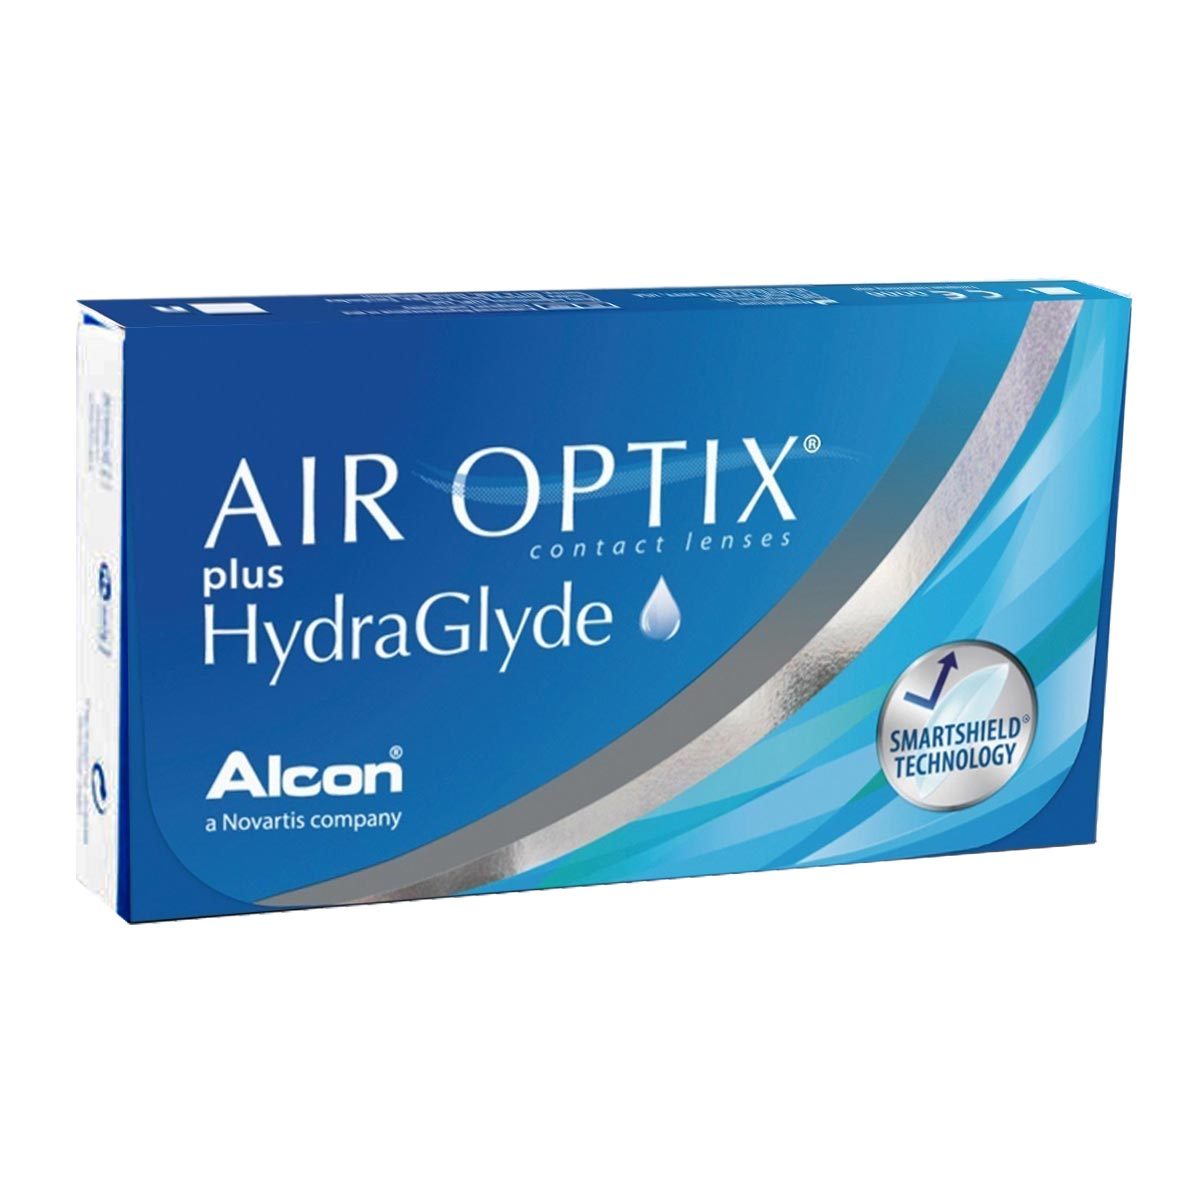 Image of Air Optix plus HydraGlyde 3 Pack